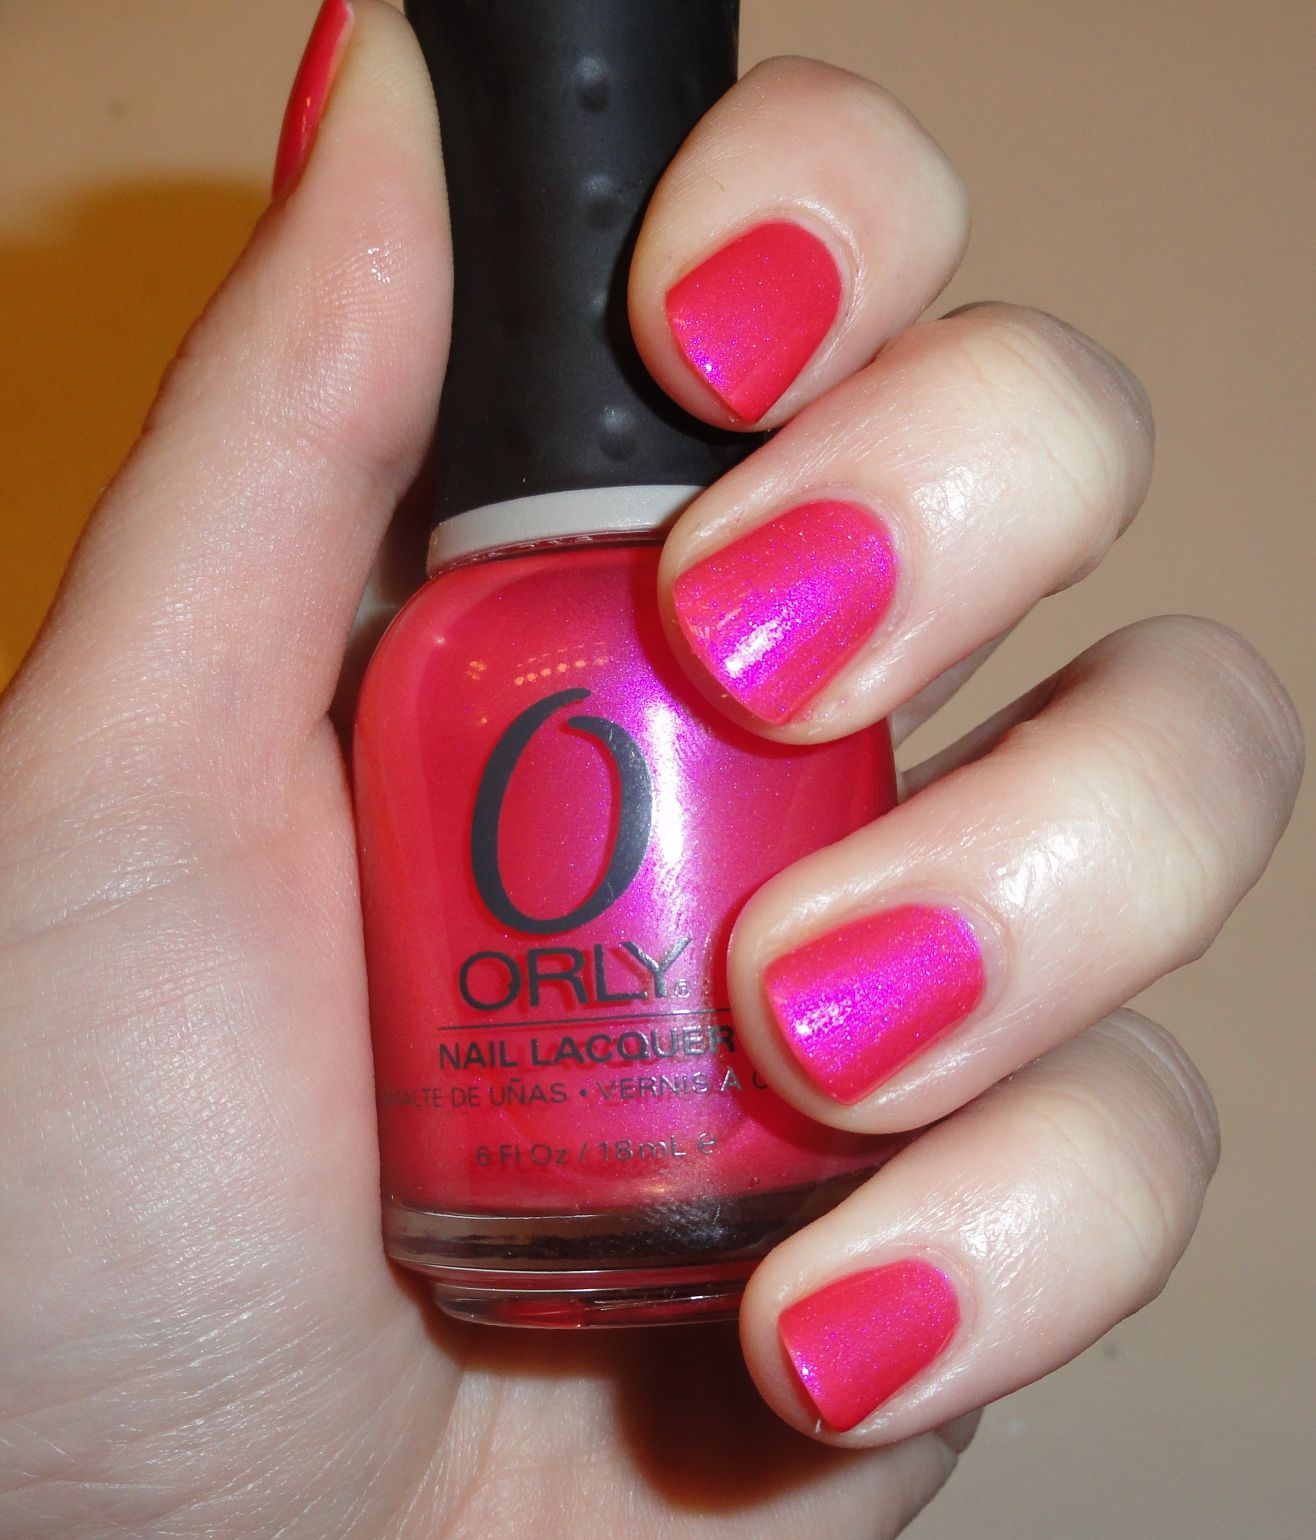 Orly Berry Blast The Color I Got Today Love Love Love Nail Polish Nail Colors Nail Polish Collection